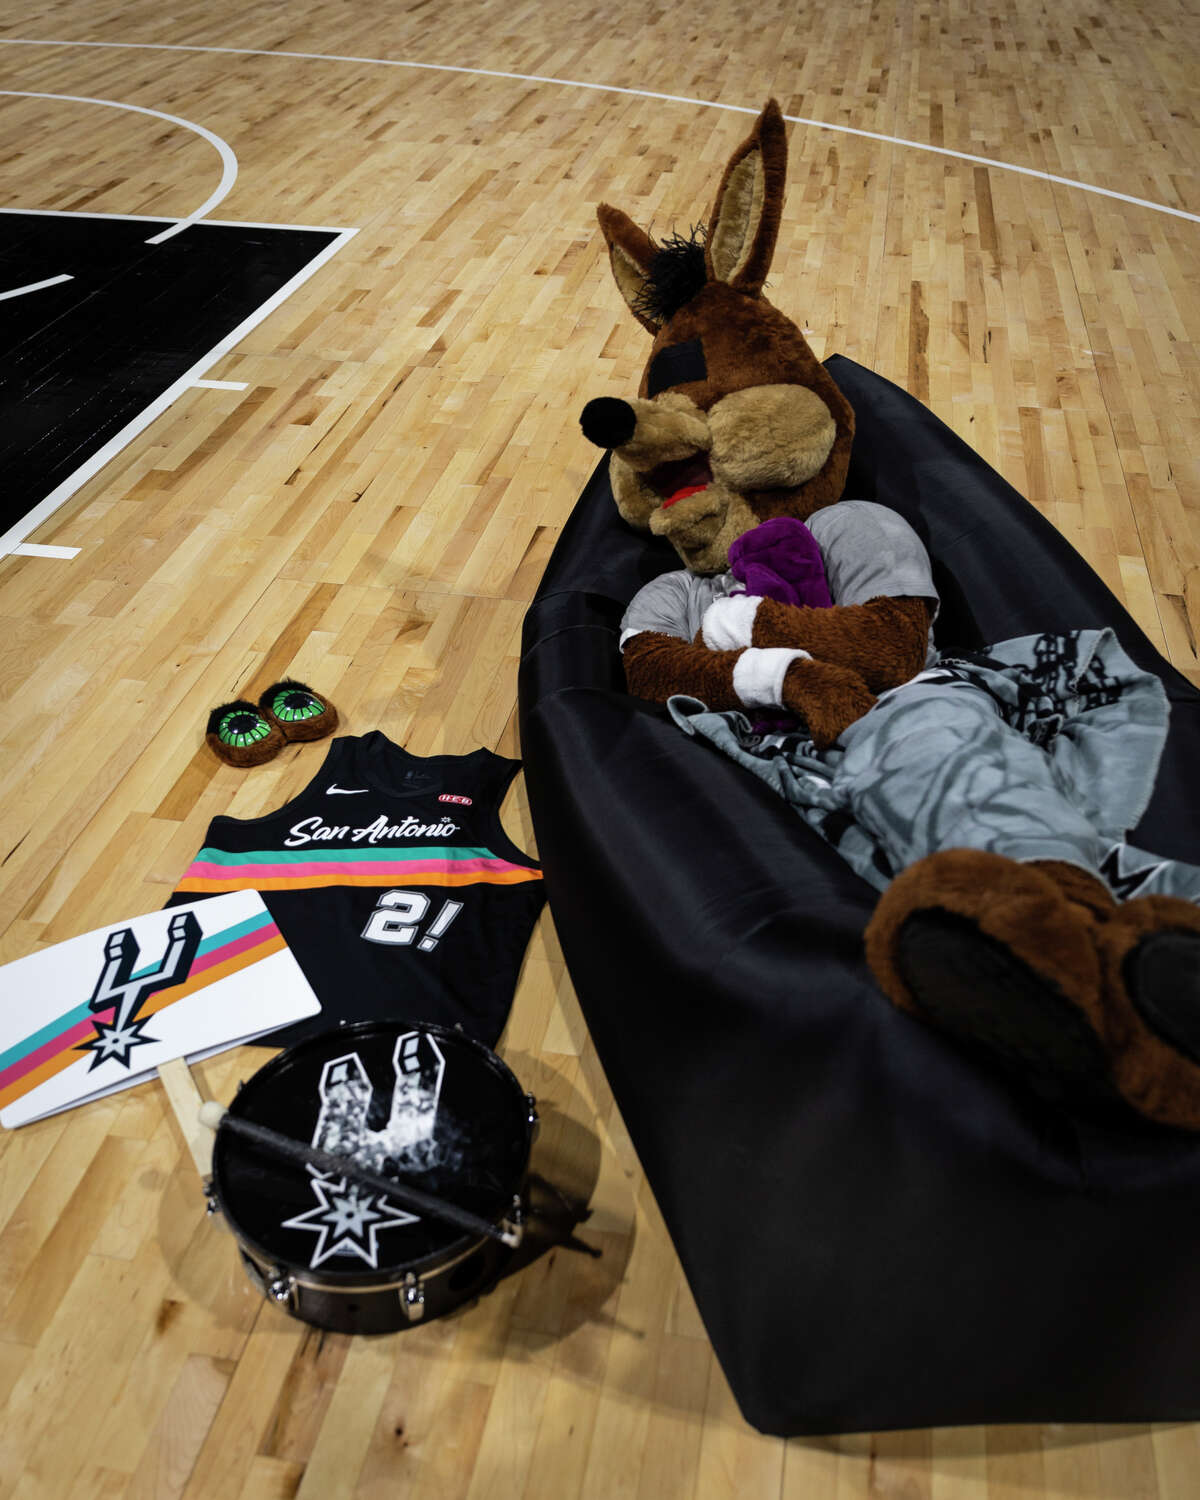 Here he is, dreaming of seeing the AT&T Center filled with his friends